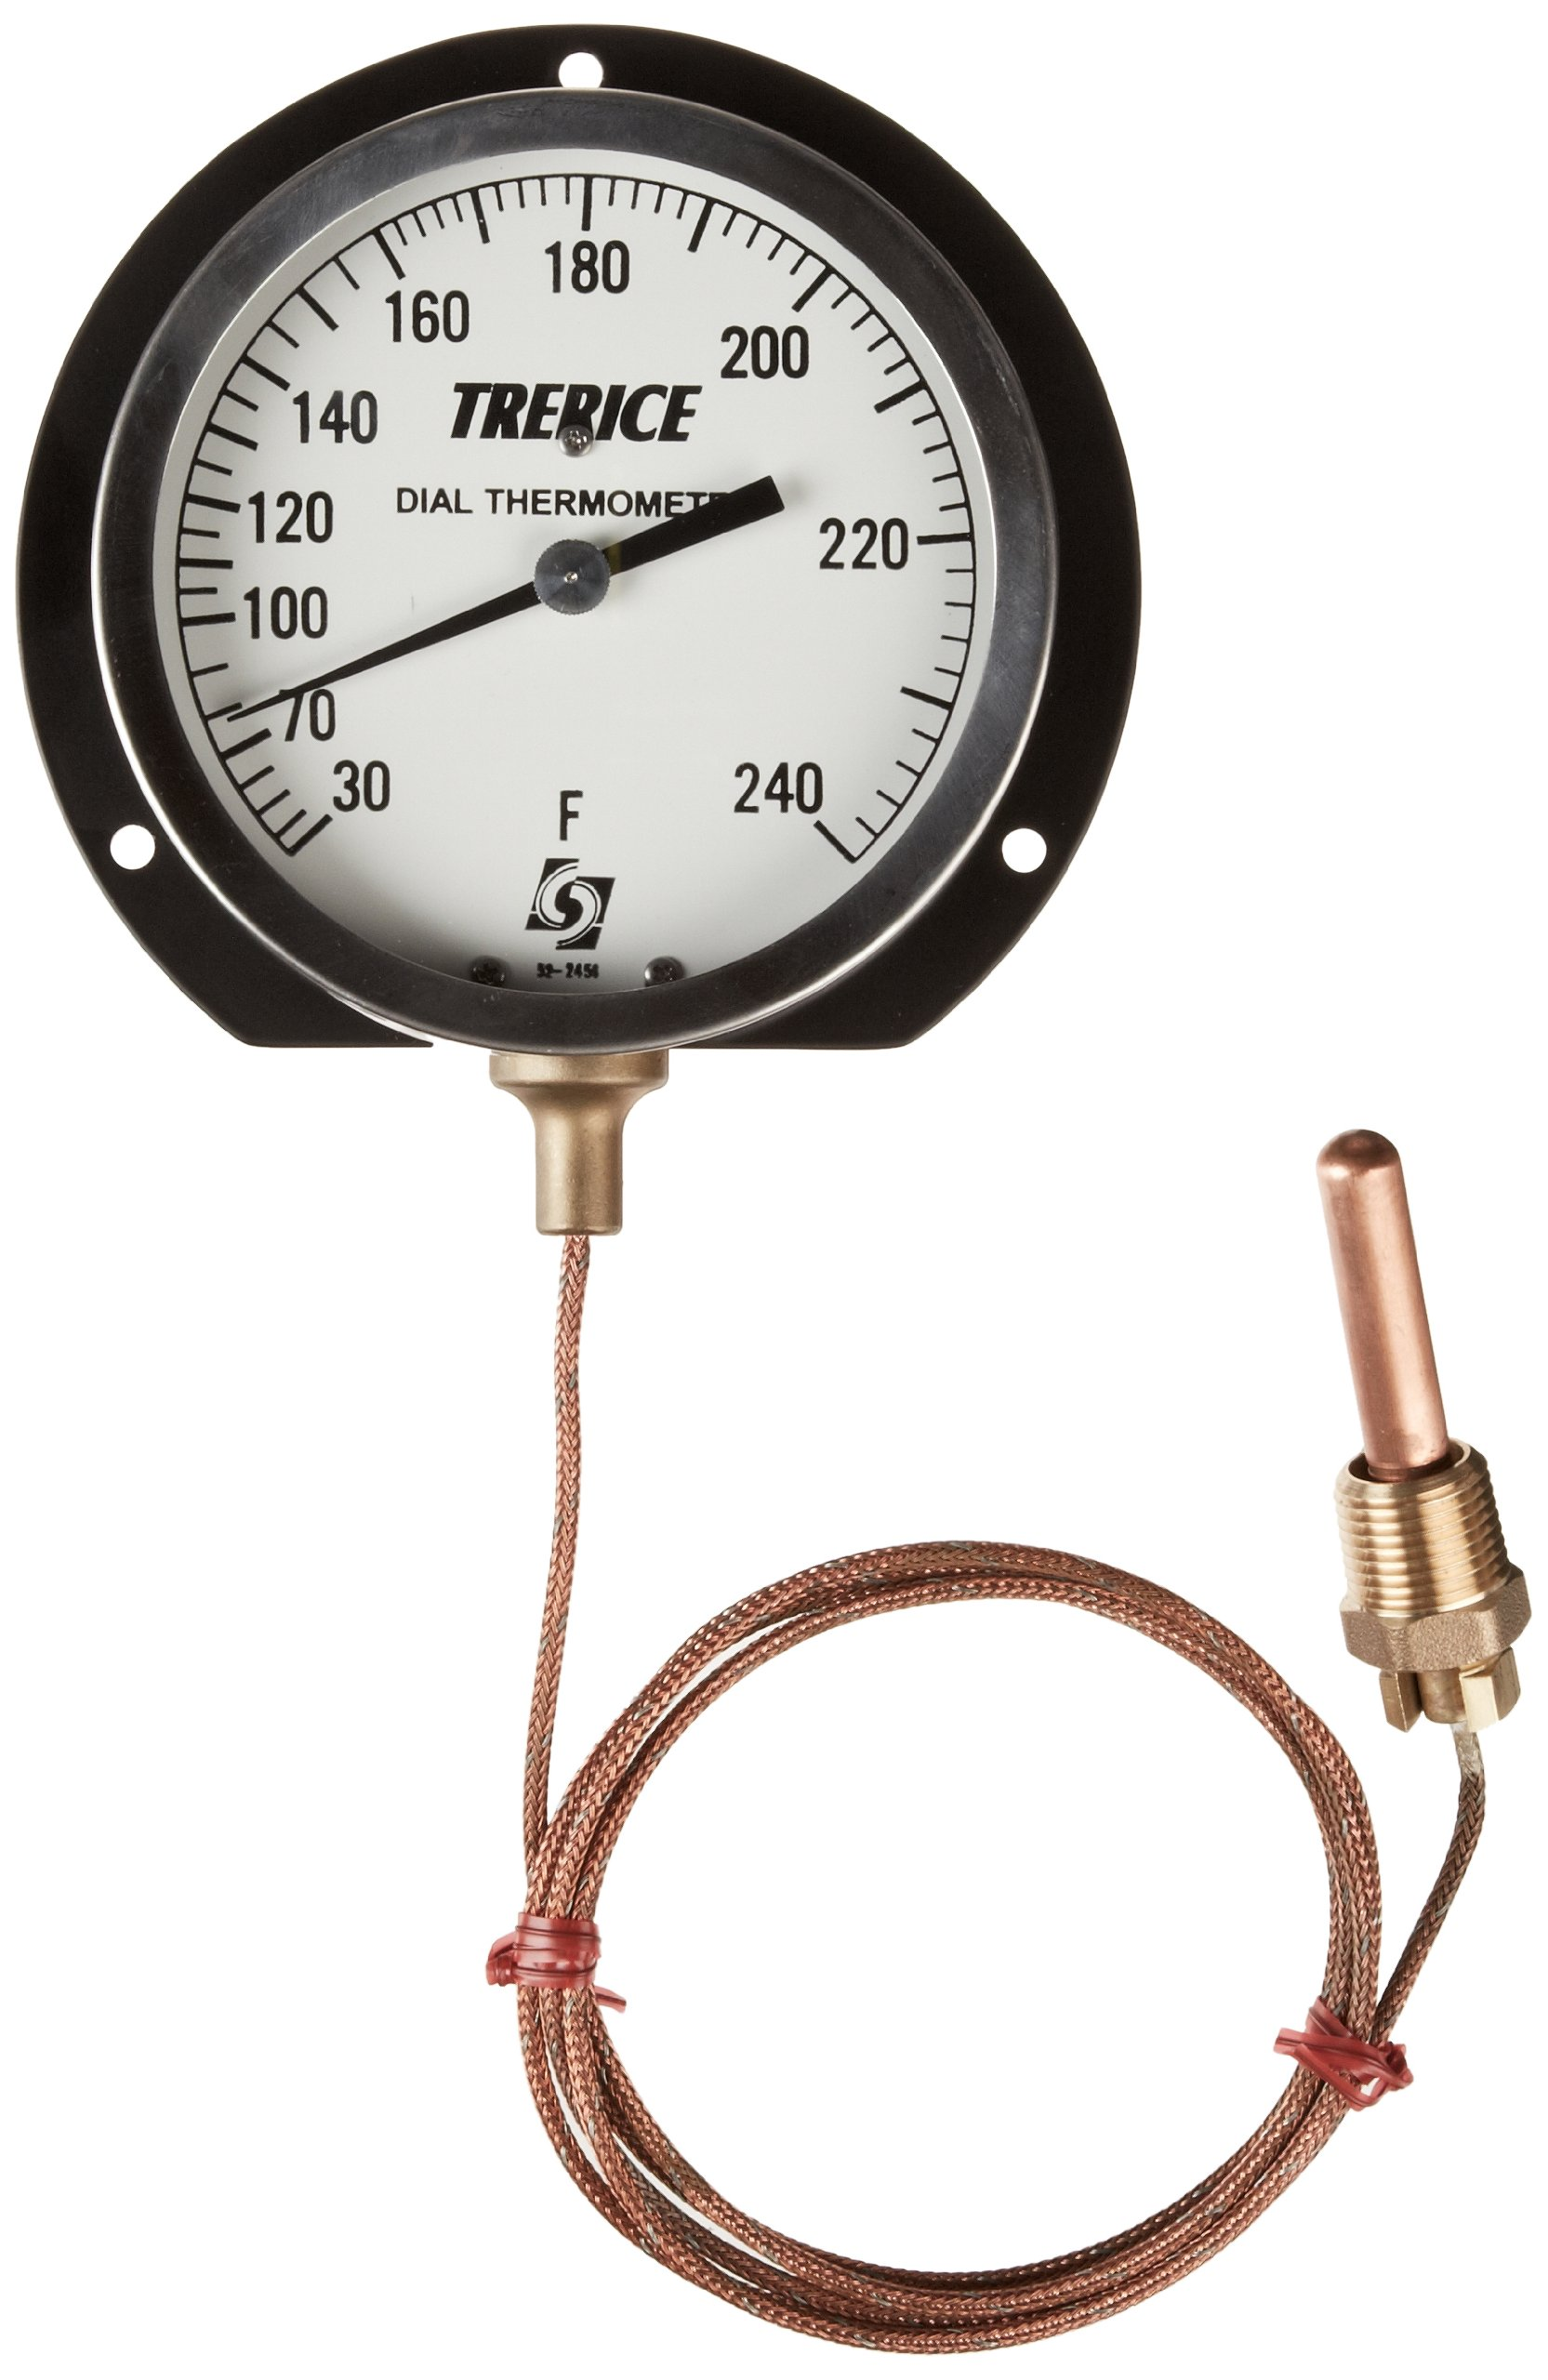 Trerice V80341110B0105 Remote Mounted Dial Thermometer, 4.5'' aluminum surface mounted case, 30-240˚F, 5' copper capillary, 2'' copper bulb